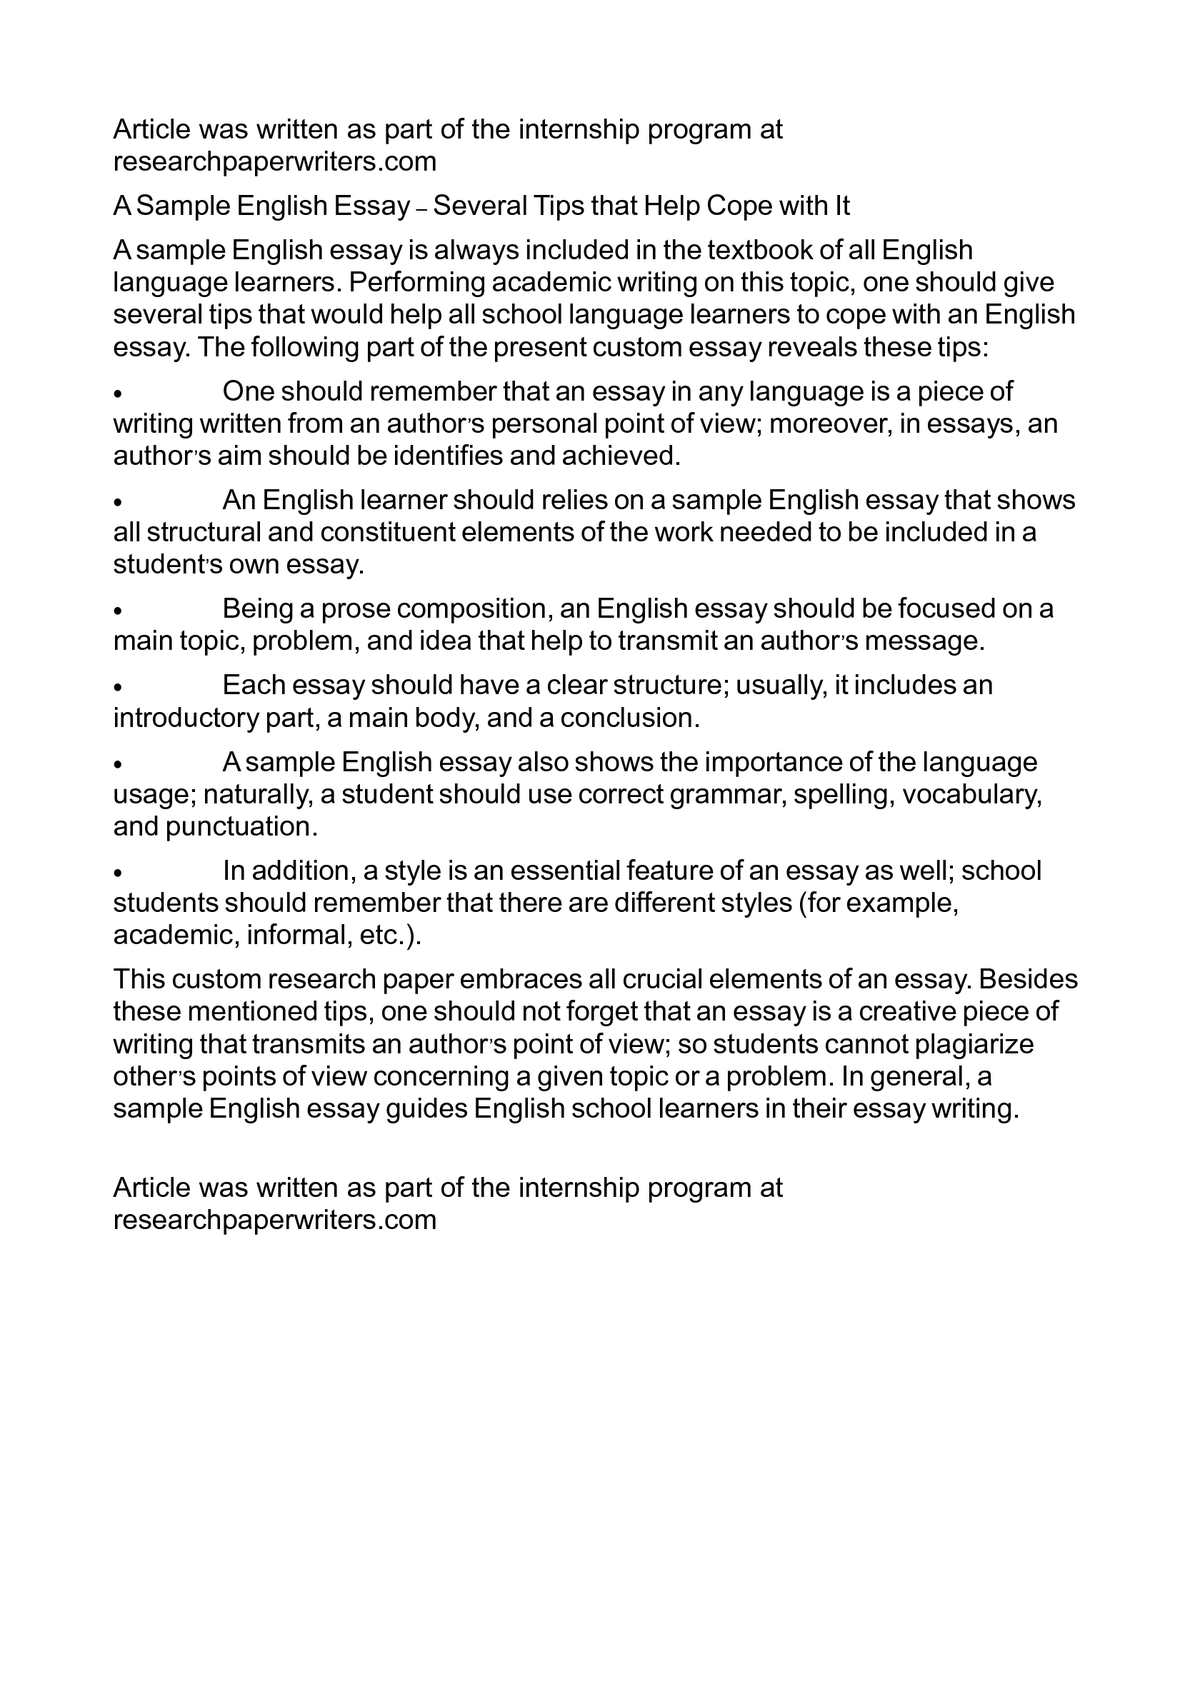 How To Write A Thesis Paragraph For An Essay  1984 Essay Thesis also Healthy Lifestyle Essay Calamo  A Sample English Essay  Several Tips That Help  After High School Essay